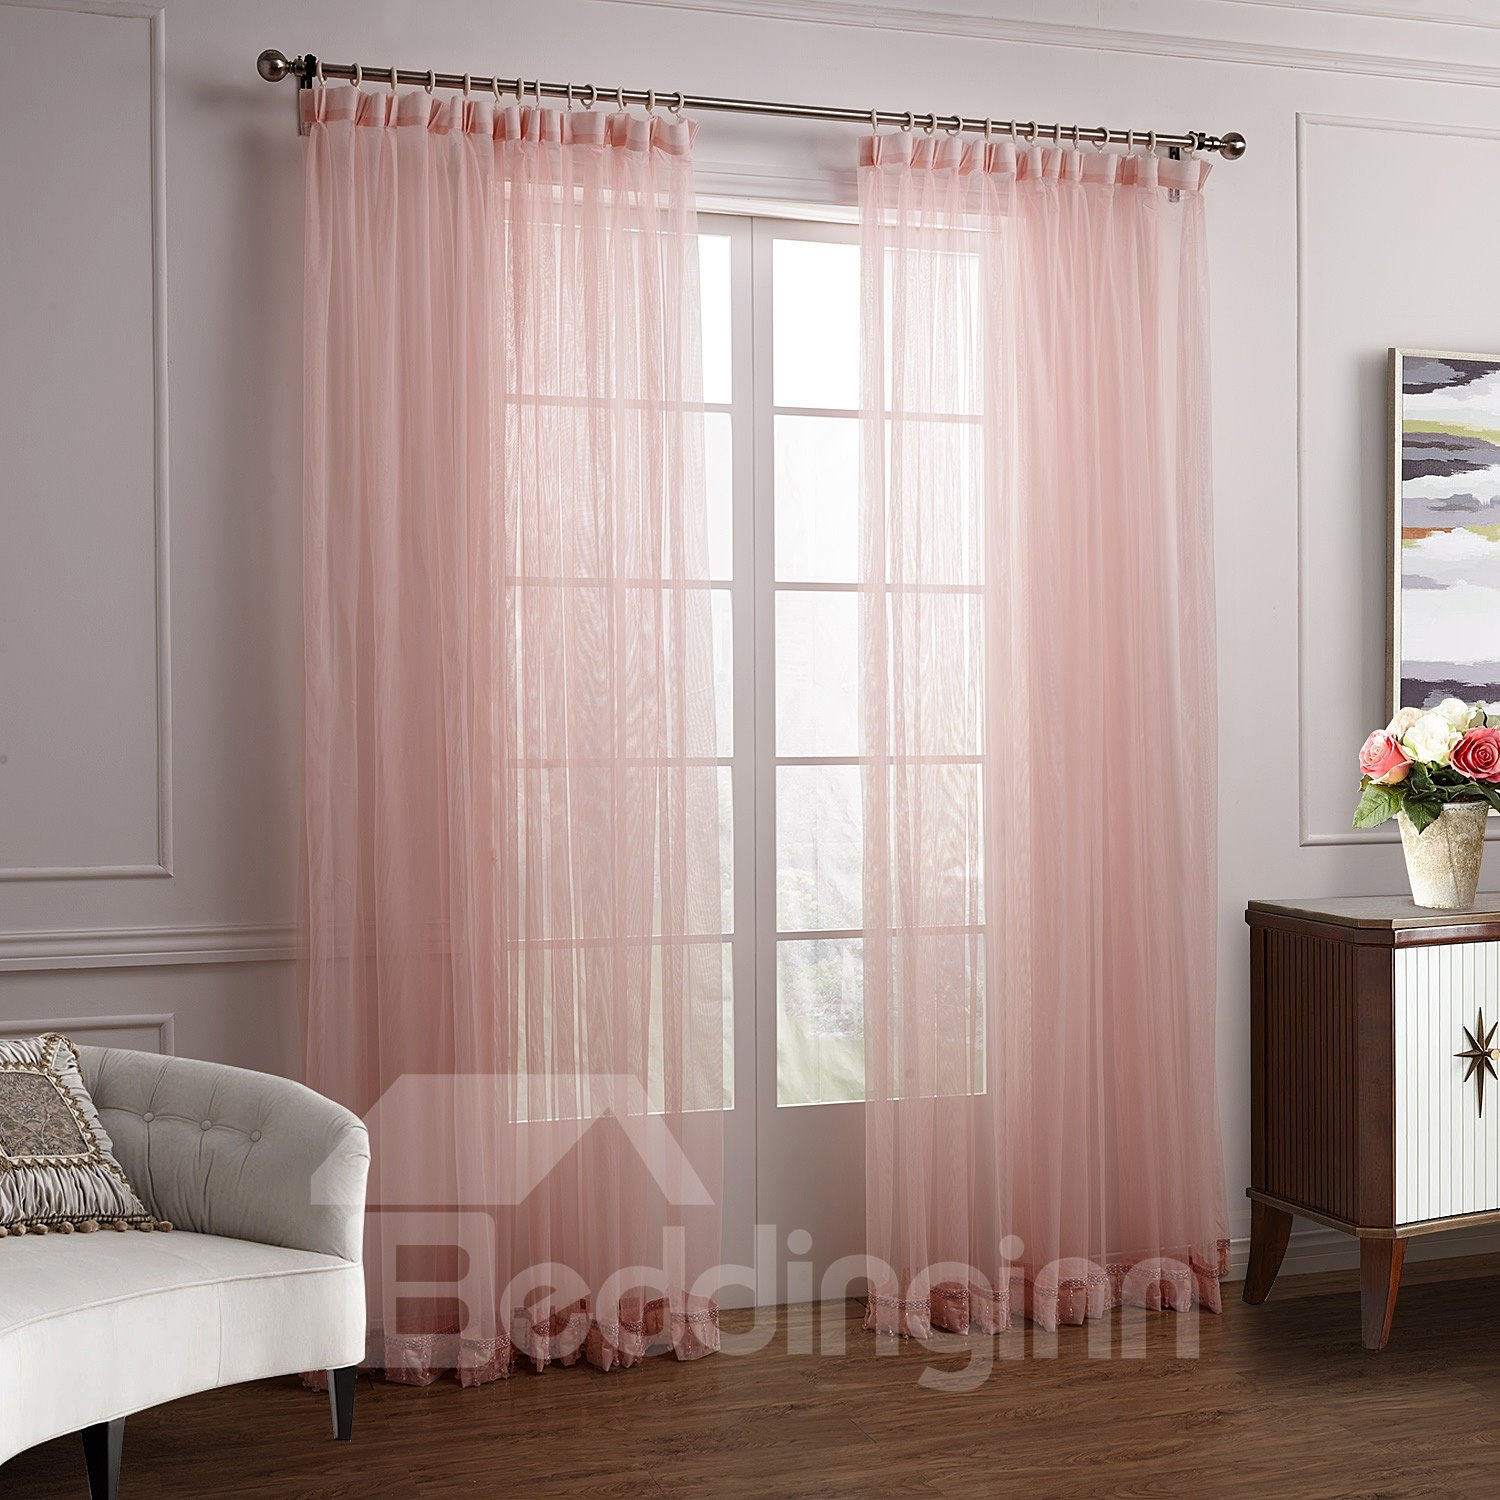 ... Lovely Elegant Pink Cinderella Custom Sheer Curtain - beddinginn.com